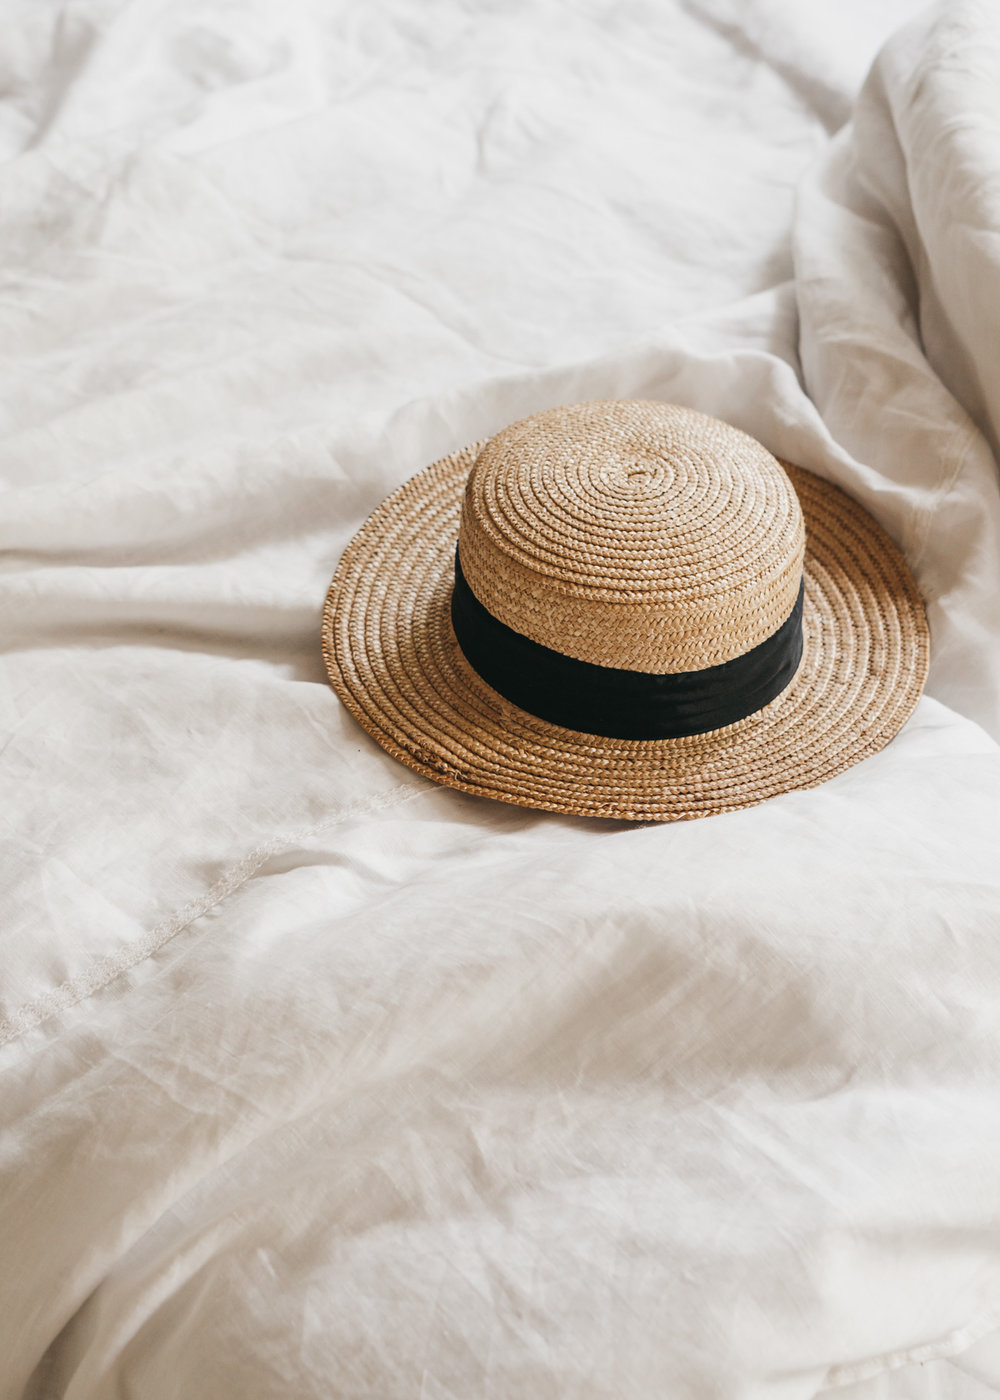 Keira-Mason-in-between-the-sheets-straw-hat-bed.jpg